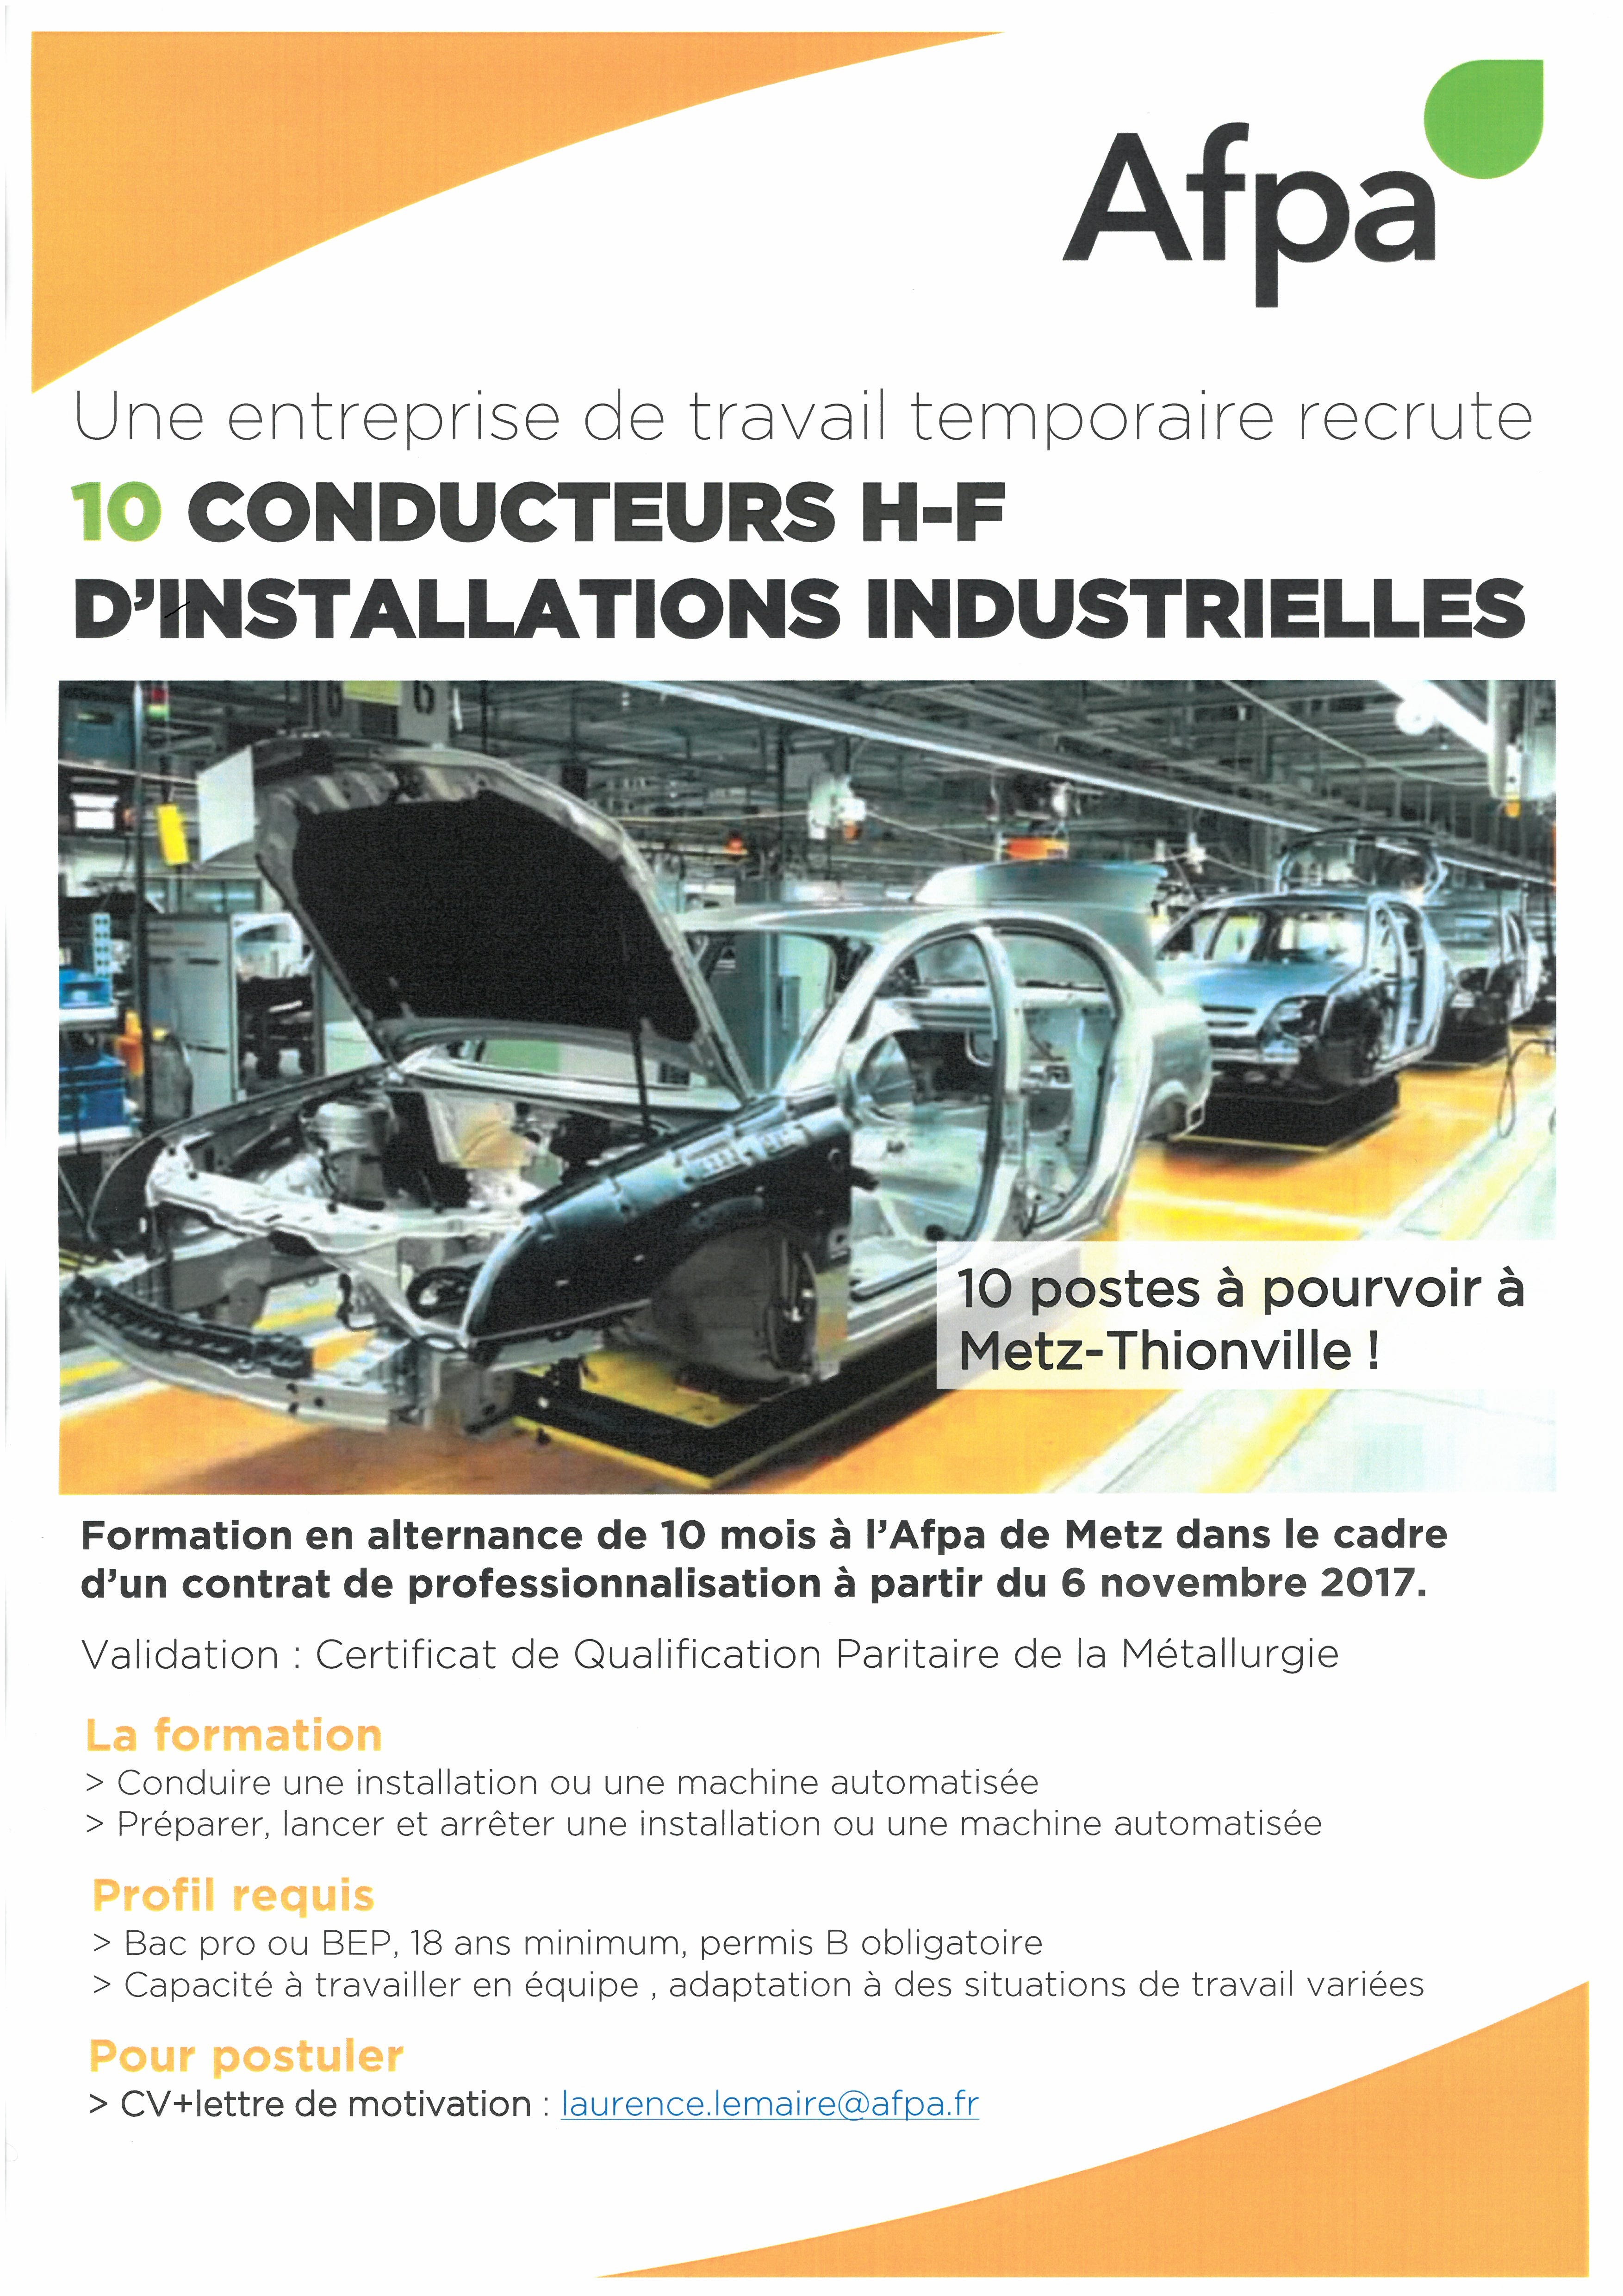 10 conducteurs d'installations industrielles